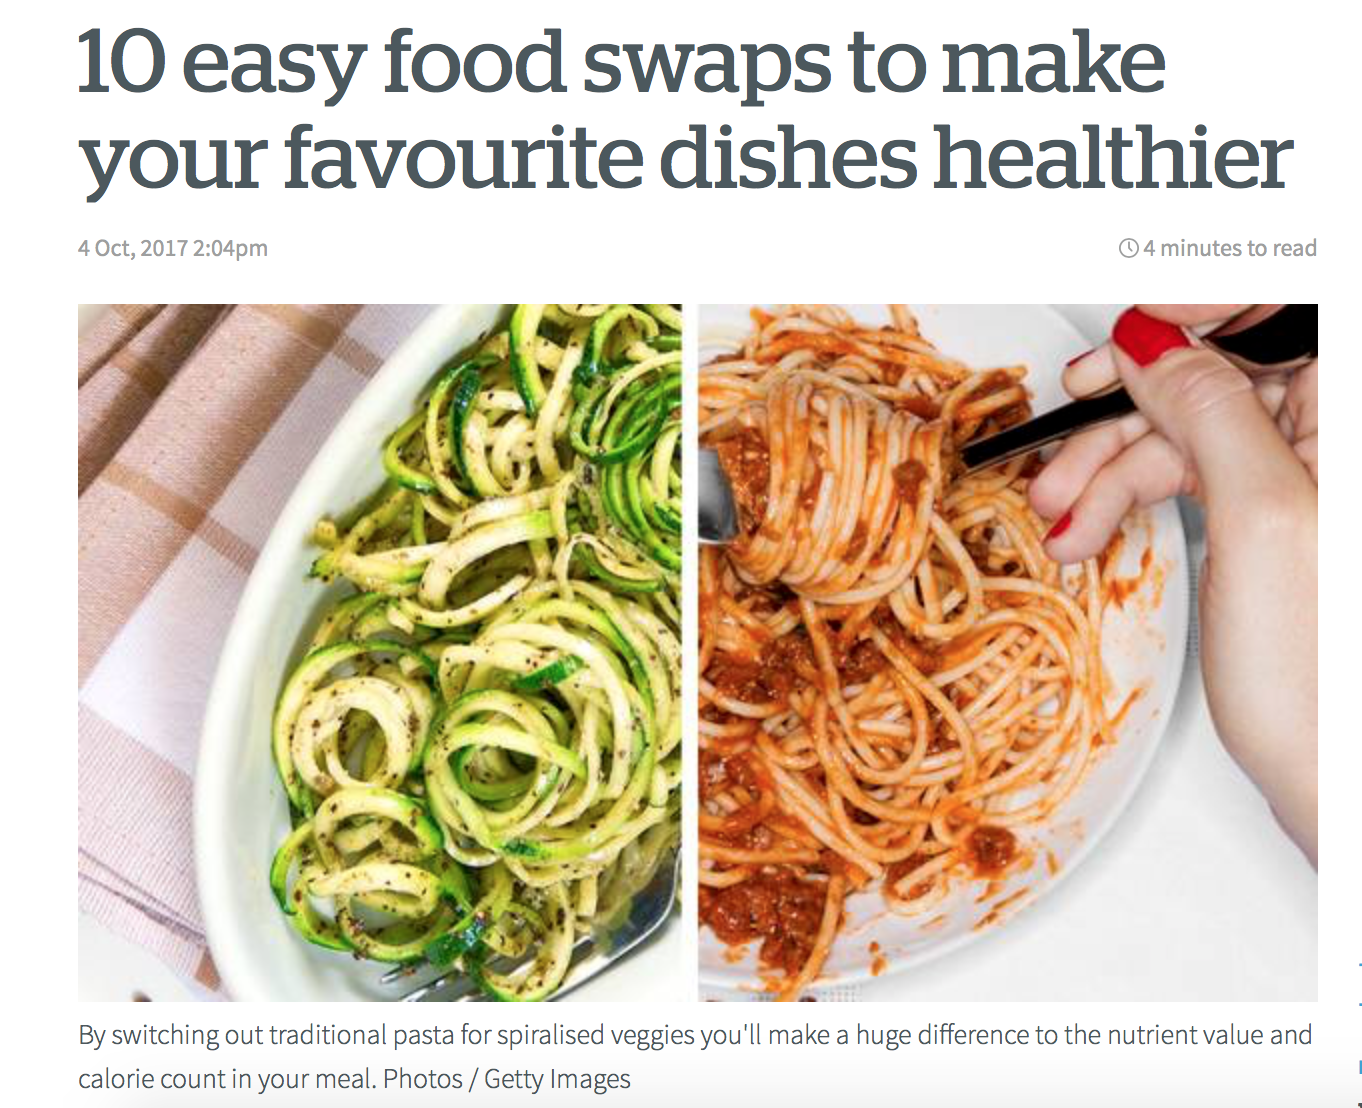 NZ Herald - Healthy Food Swaps with Danijela